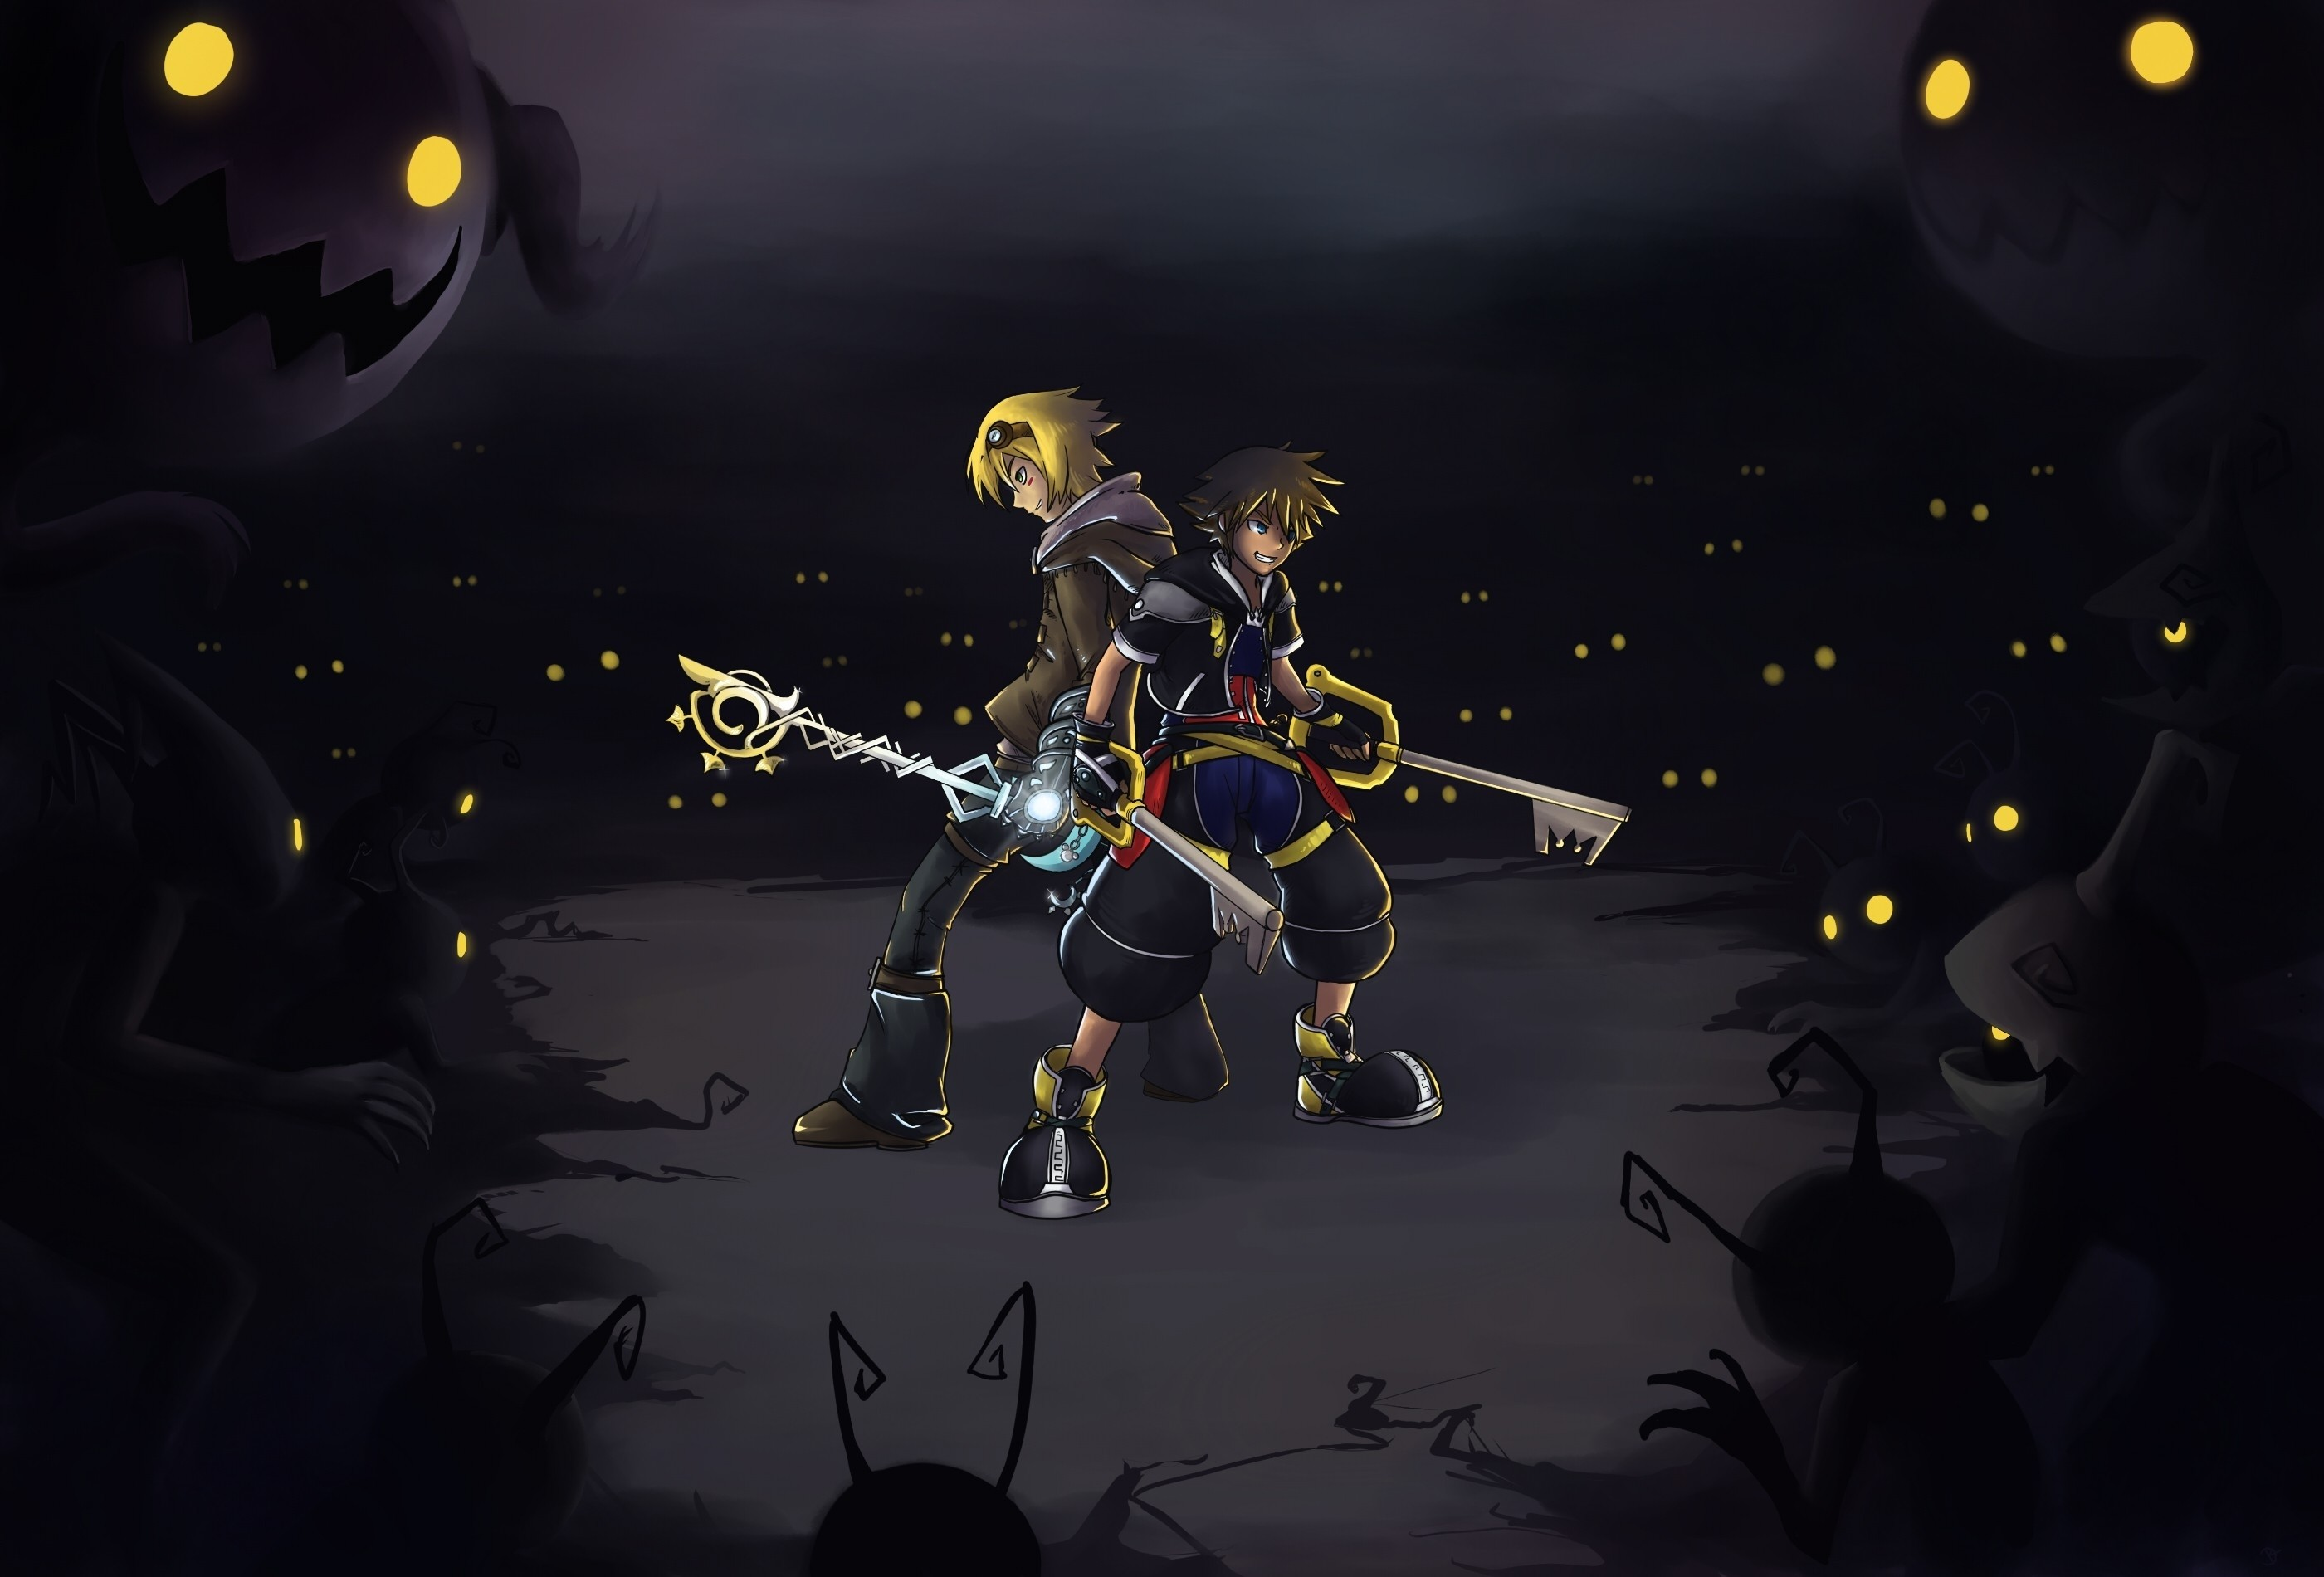 2800x1900 Kingdom hearts league of legends ezreal dangerous sora  wallpaper